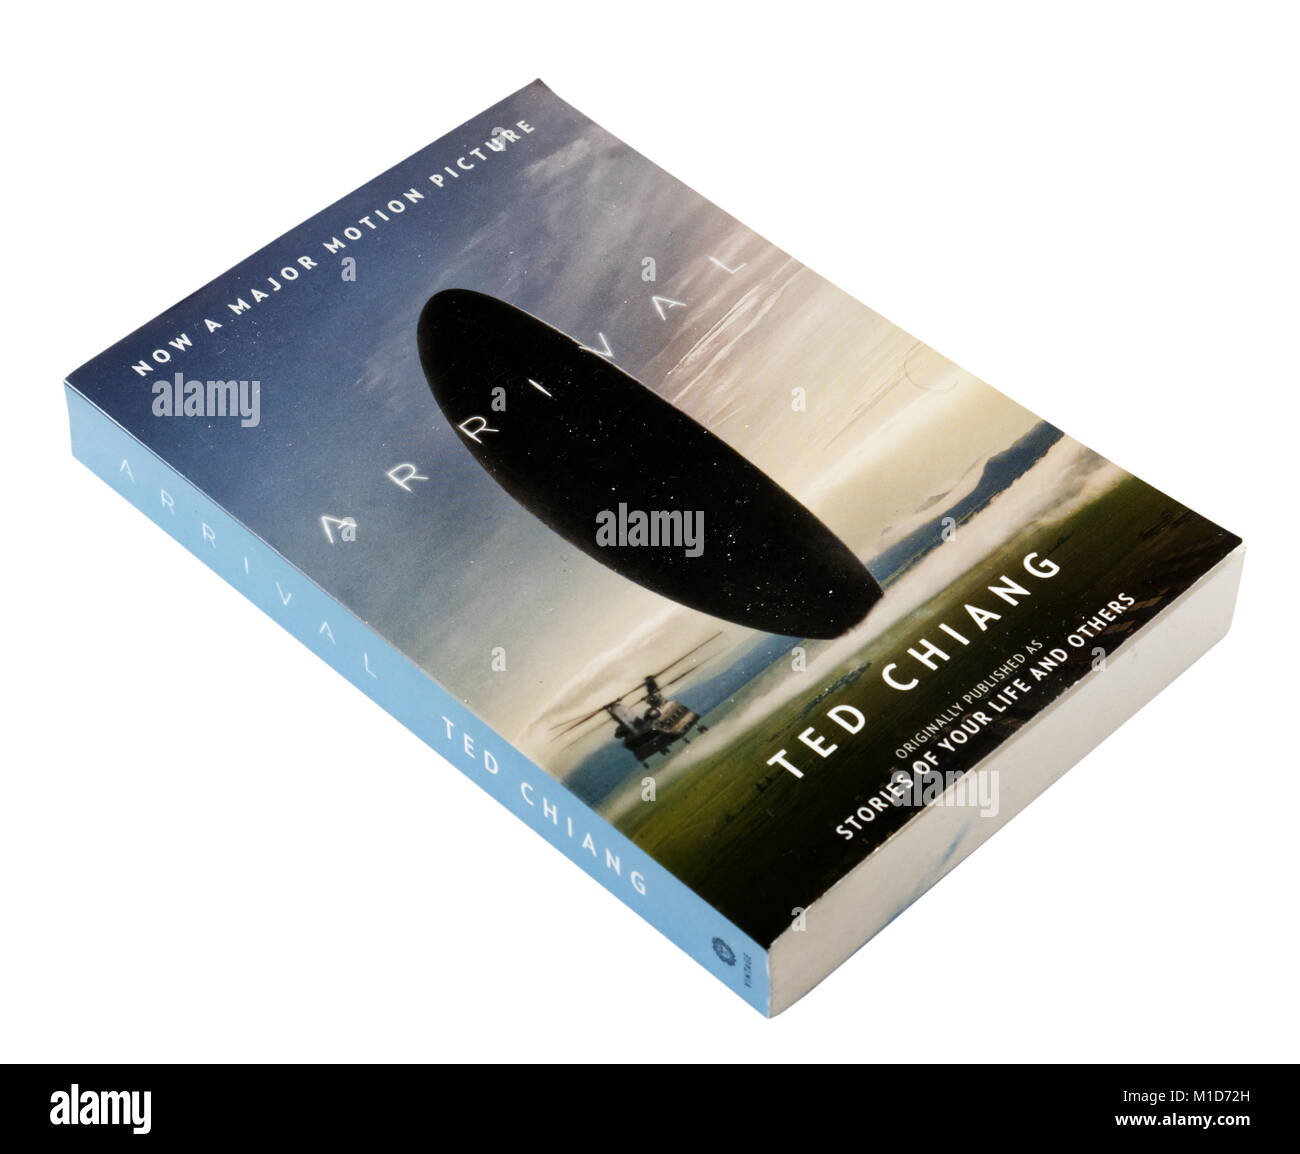 Arrival by Ted Chiang, originally published as Stories of Your Life - Stock Image